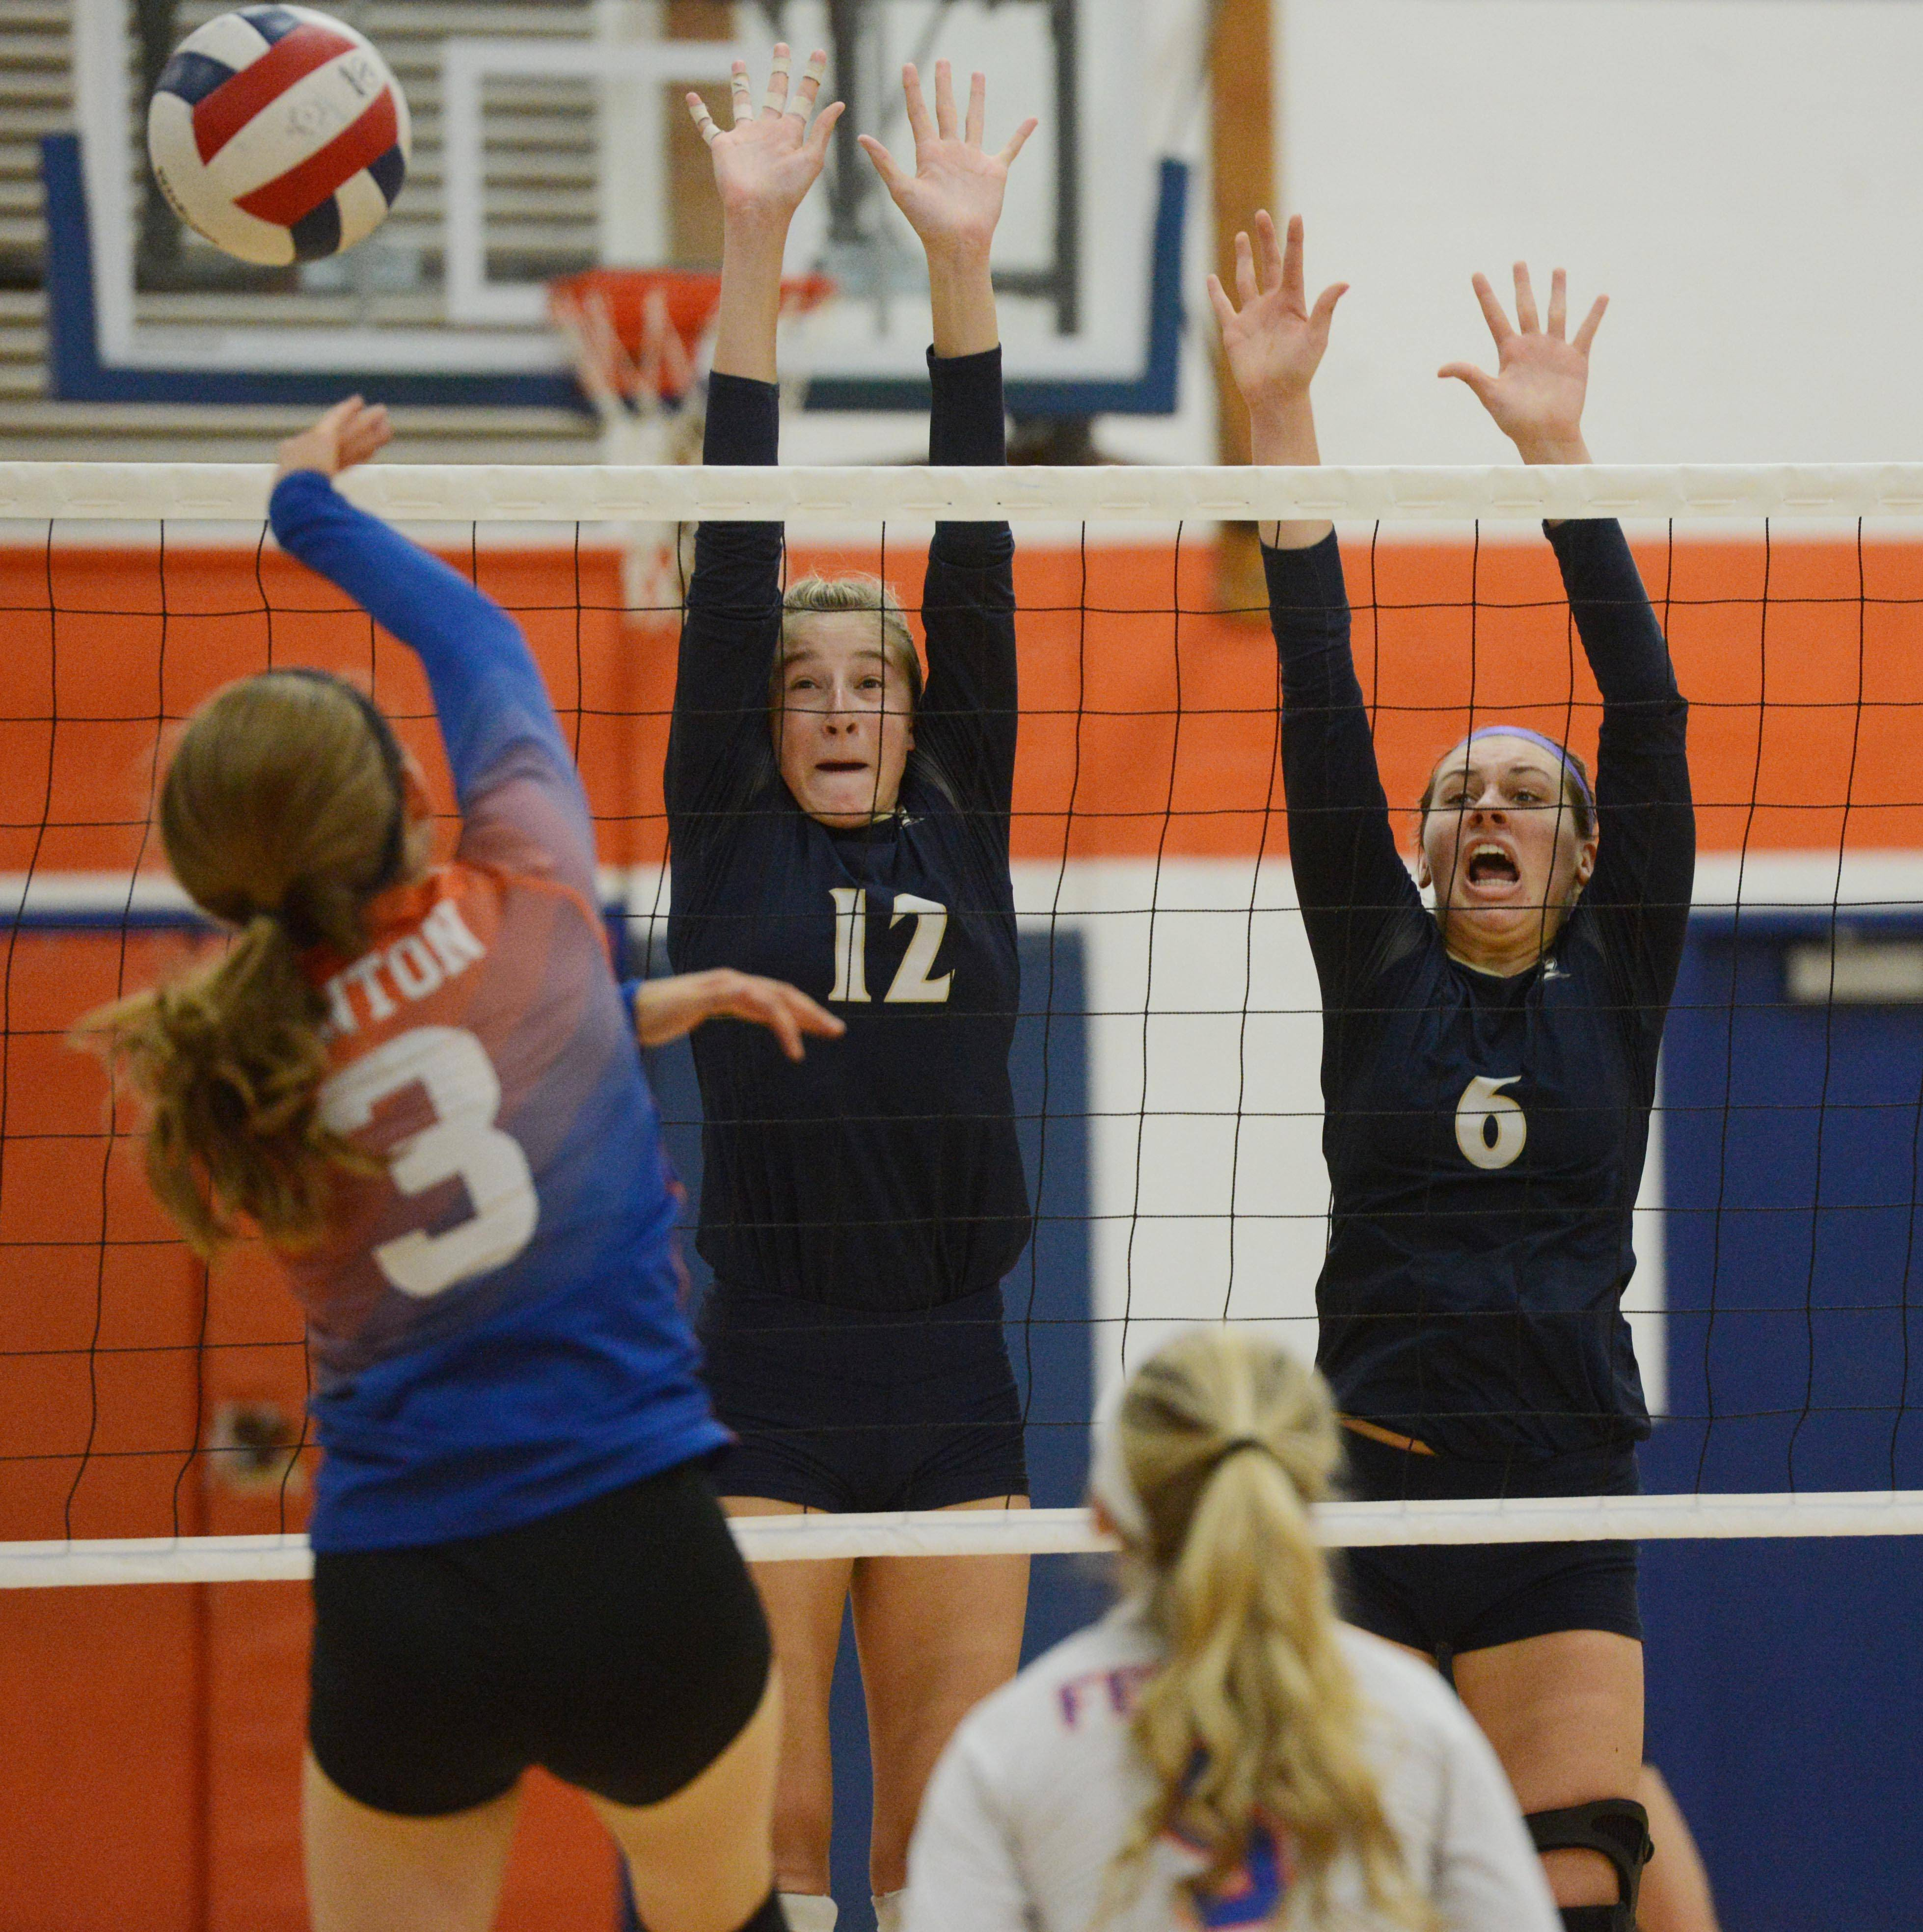 Fenton's Julia Kaspari, left, tries to hit the ball past IC Catholic Prep's Claire Wagner, middle, and Kristen Brachmann during Tuesday's girls volleyball match in Bensenville.